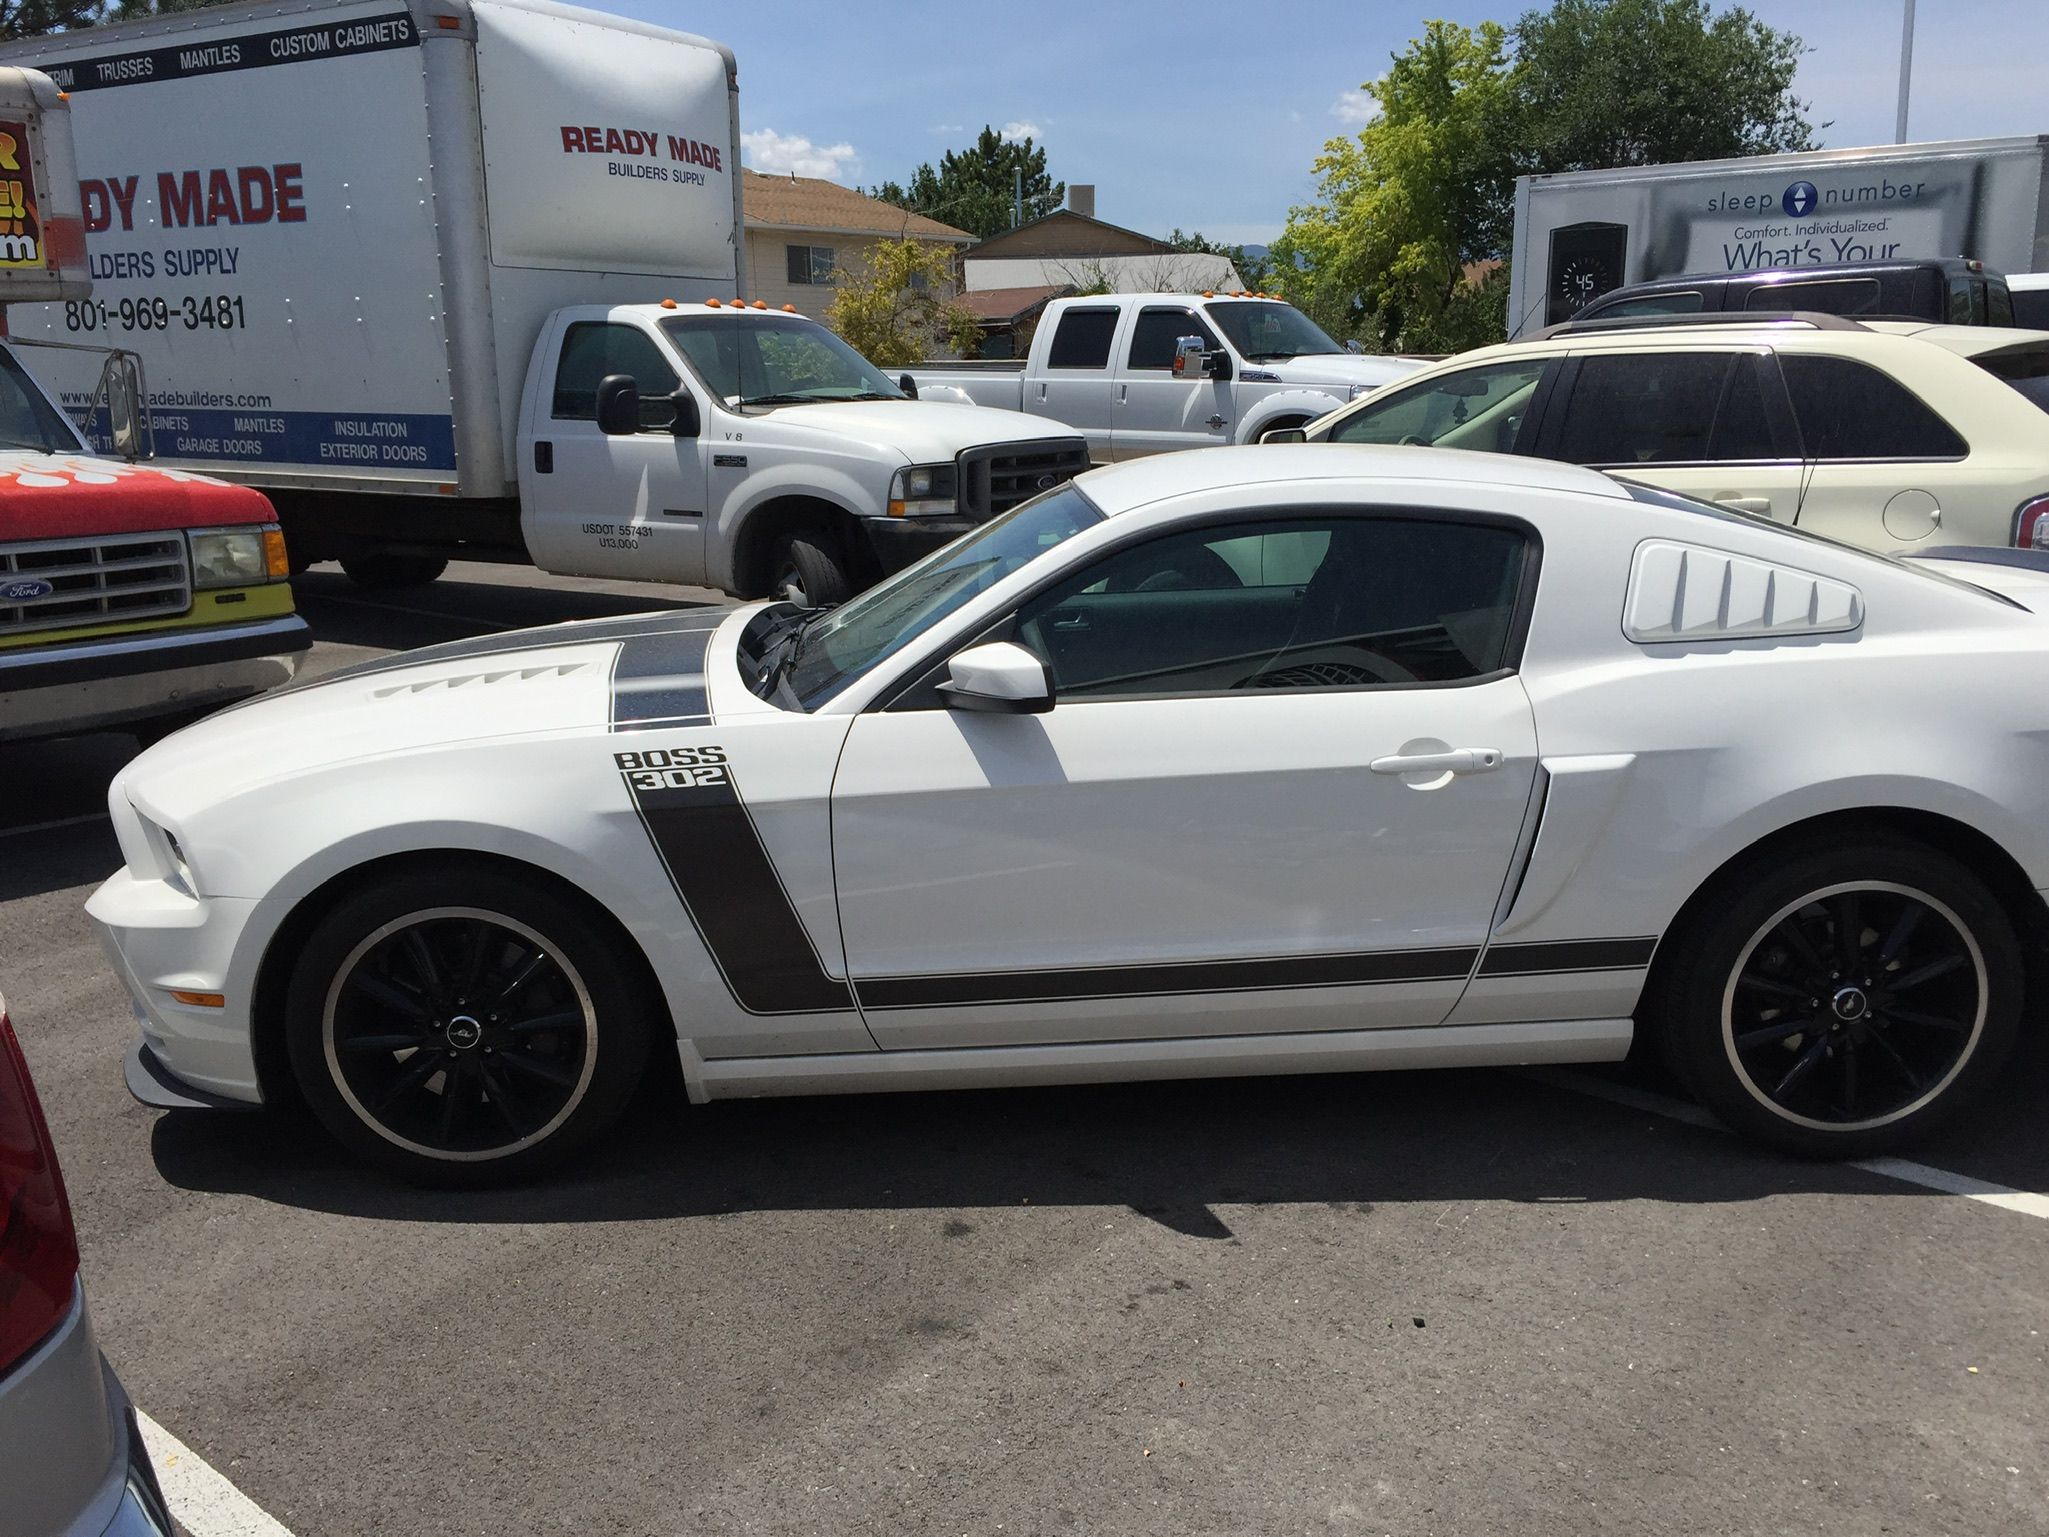 Ford Mustang Boss 302 After Wheel Painting